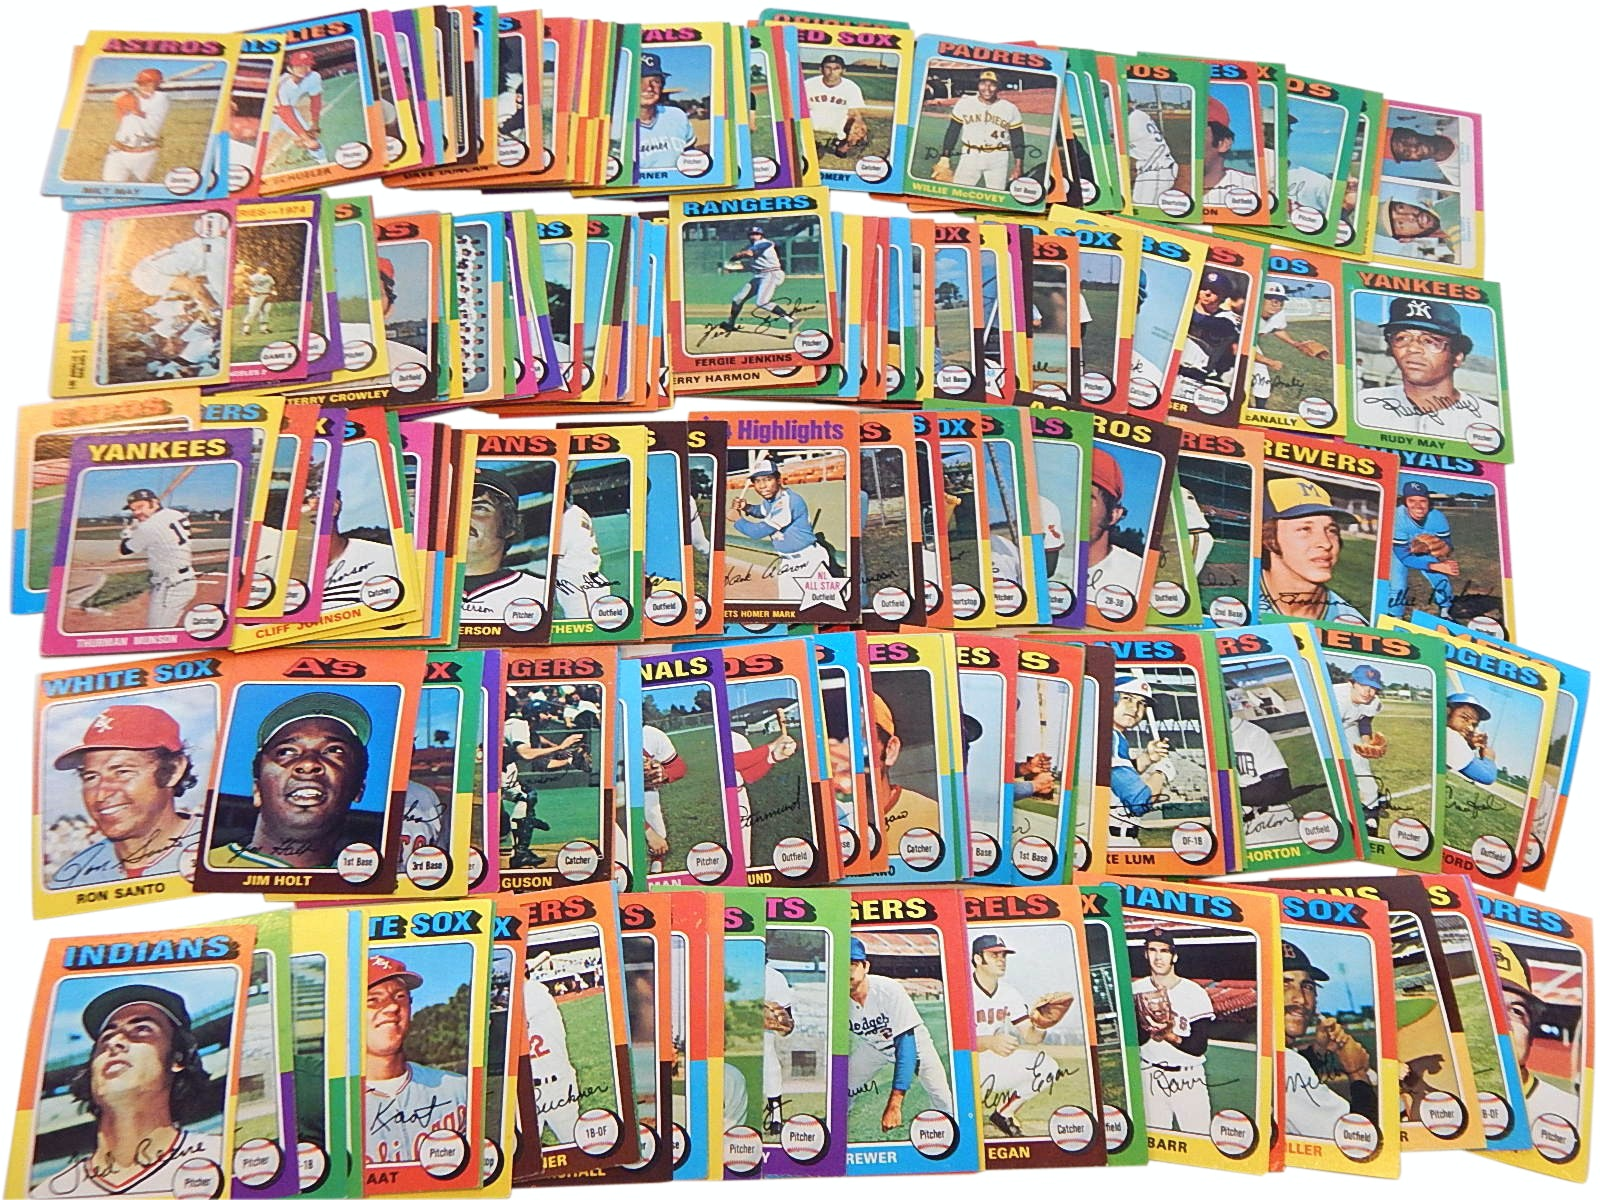 1975 Topps Baseball Card Collection with Munson, Aaron, Jenkins and More